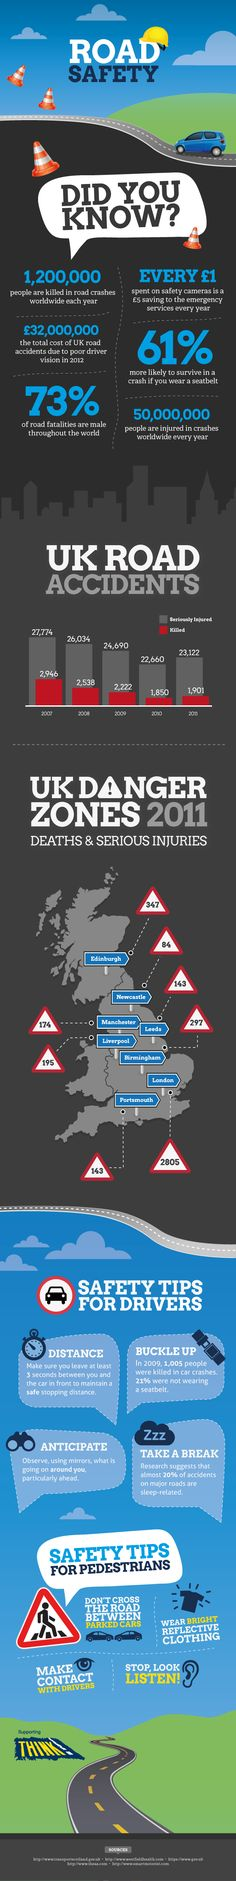 Fire and rescue services across the country currently taking part in a national week of activity [9-15 June], promoting road safety to local communities. This infographic illustrates the impact of RTCs in the UK. For more information visit www.cfoa.org.uk/UKRoadSafetyWeek2014